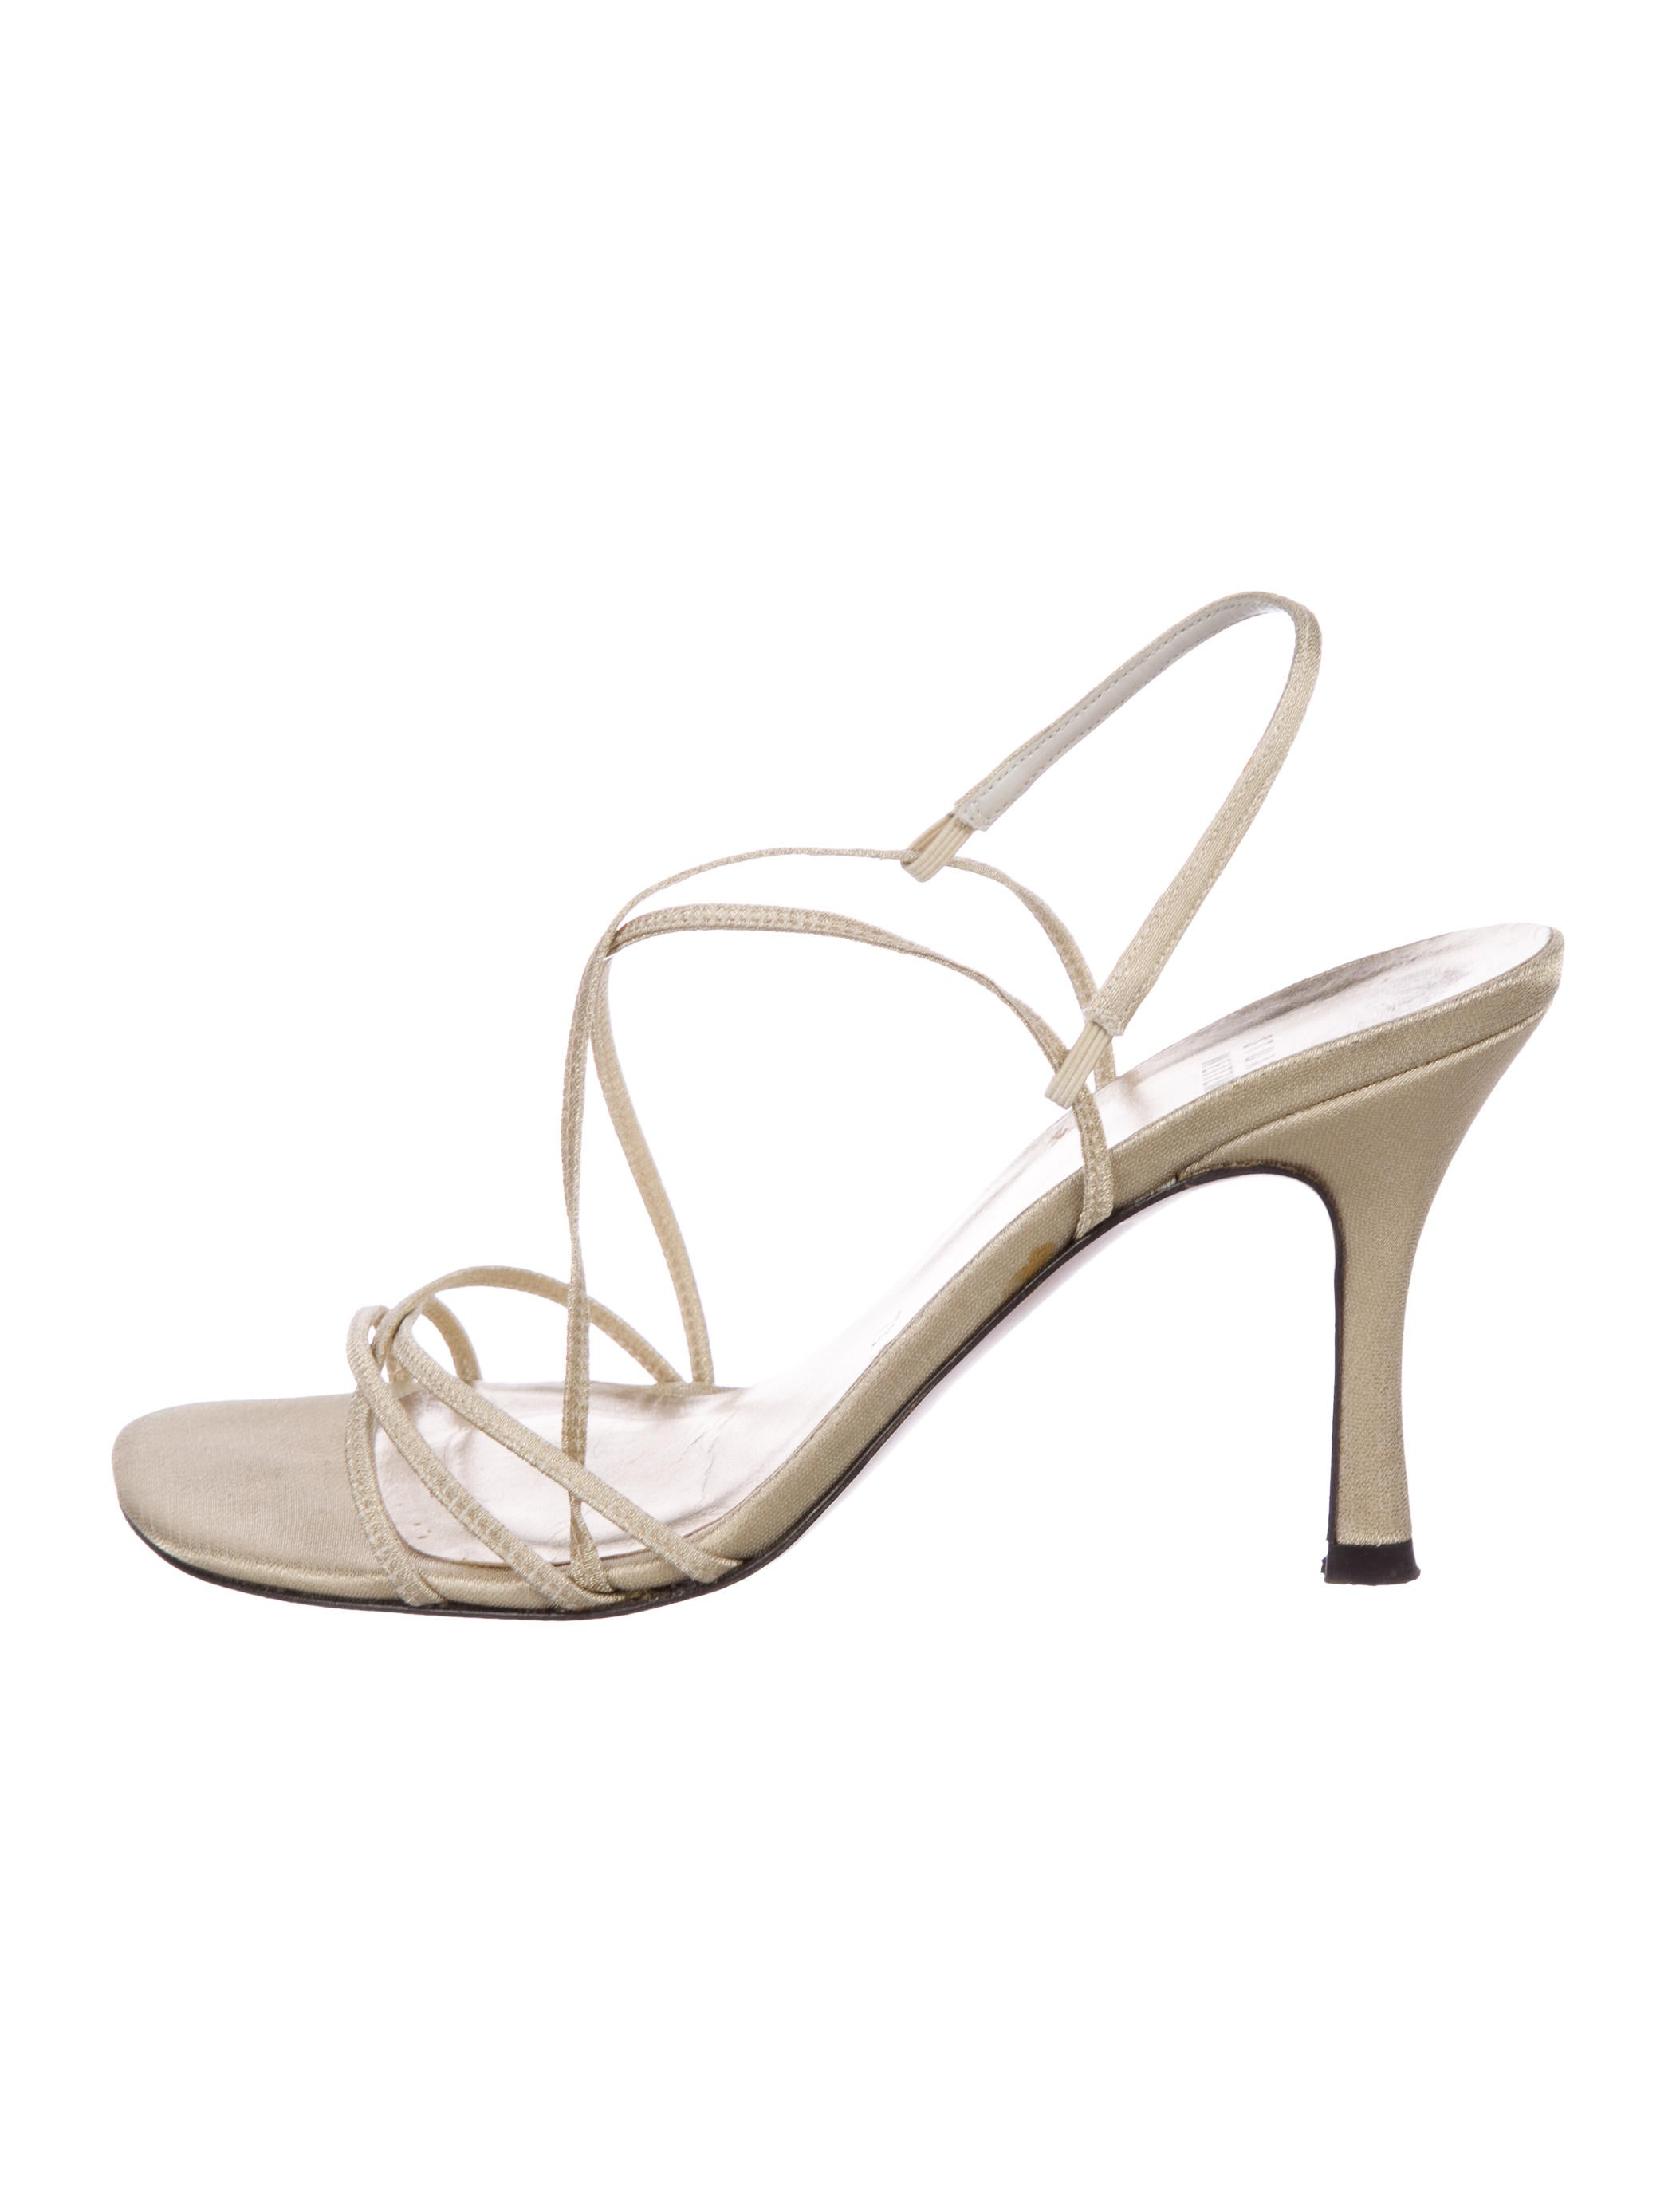 Stuart Weitzman Square-Toe Multistrap Sandals 100% authentic cheap price for nice best place to buy online affordable online high quality online XCnv3xp